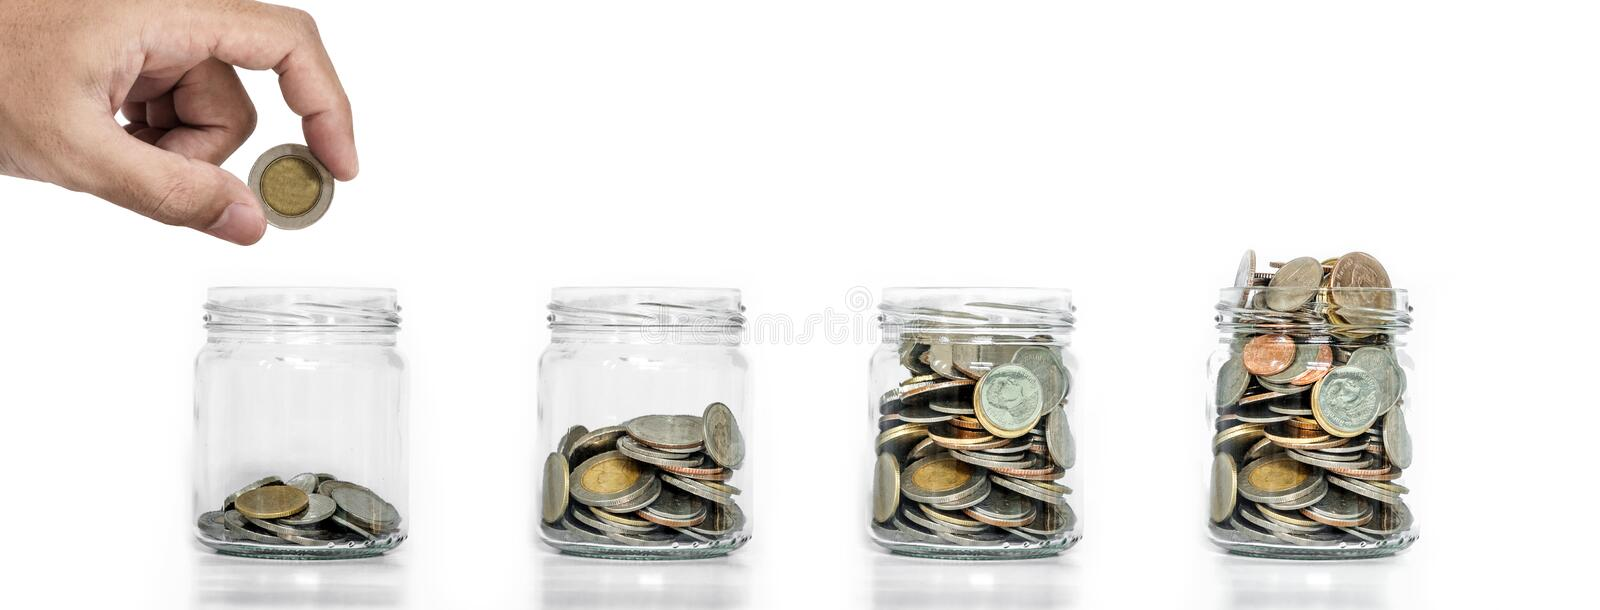 Money saving, Hand putting coin in glass jar with coins inside growing up, on white background royalty free stock images